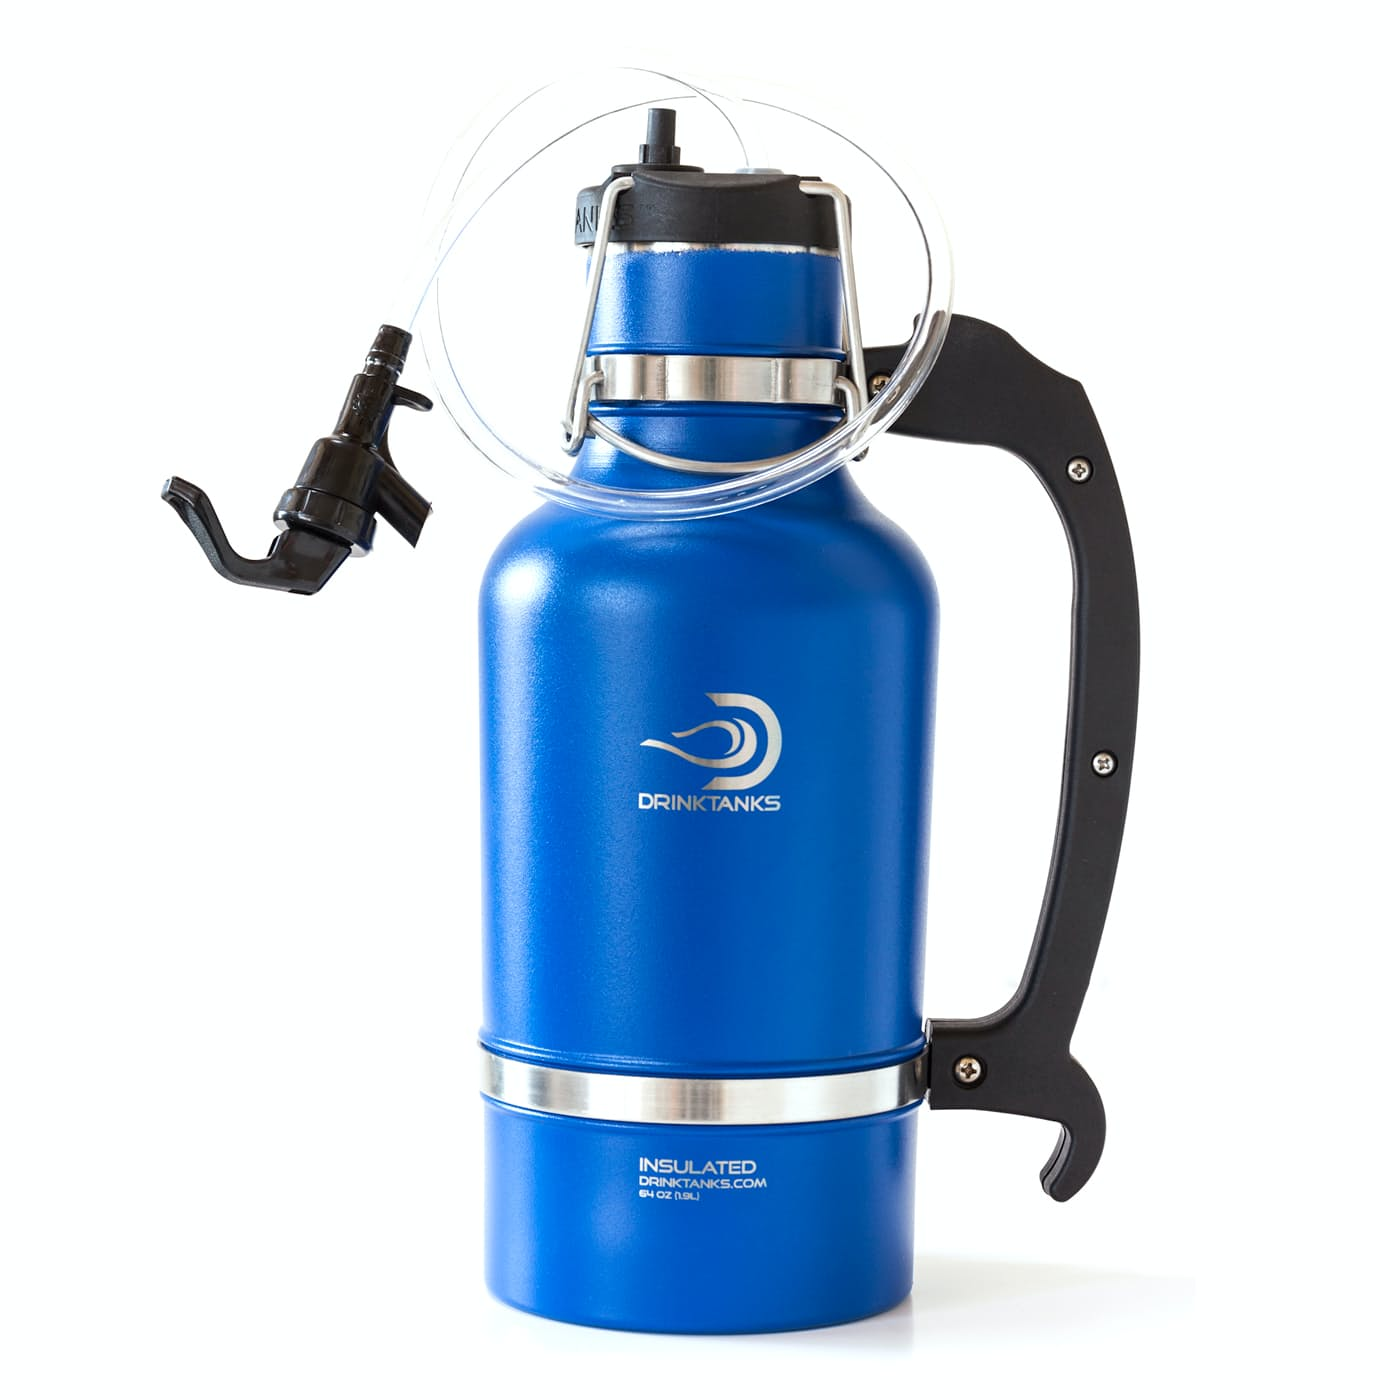 Ymo0uiwypv drink tanks drink tank blue 0 original